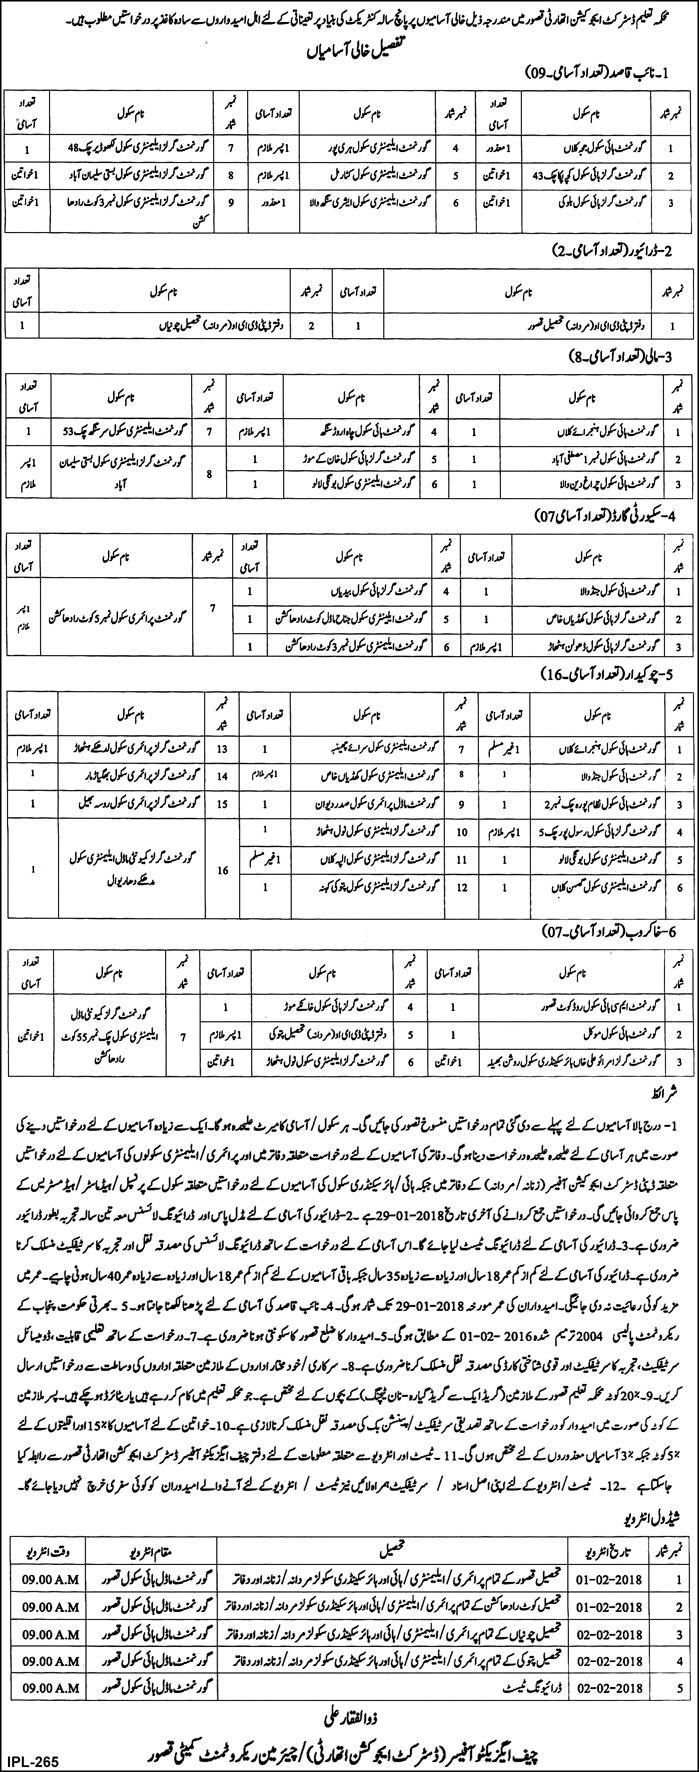 Education Department Job in different schools and Deputy Office District Education Authority Qasoor Detail Vacant Positions  Naib Qasid Vacant Posts 09  Driver Vacant Posts 02  Security Gaurd Vacant Posts 08  Mali Vacant Posts 08  Chowkidar Vacant posts 16  Khakroob Vacant Posts 07  Last Date for Application 29-01-2018             (adsbygoogle = window.adsbygoogle || ).   #(schools) #2018 #airforcejobs #armyjobs #bostonpublicschools #cartoon #c